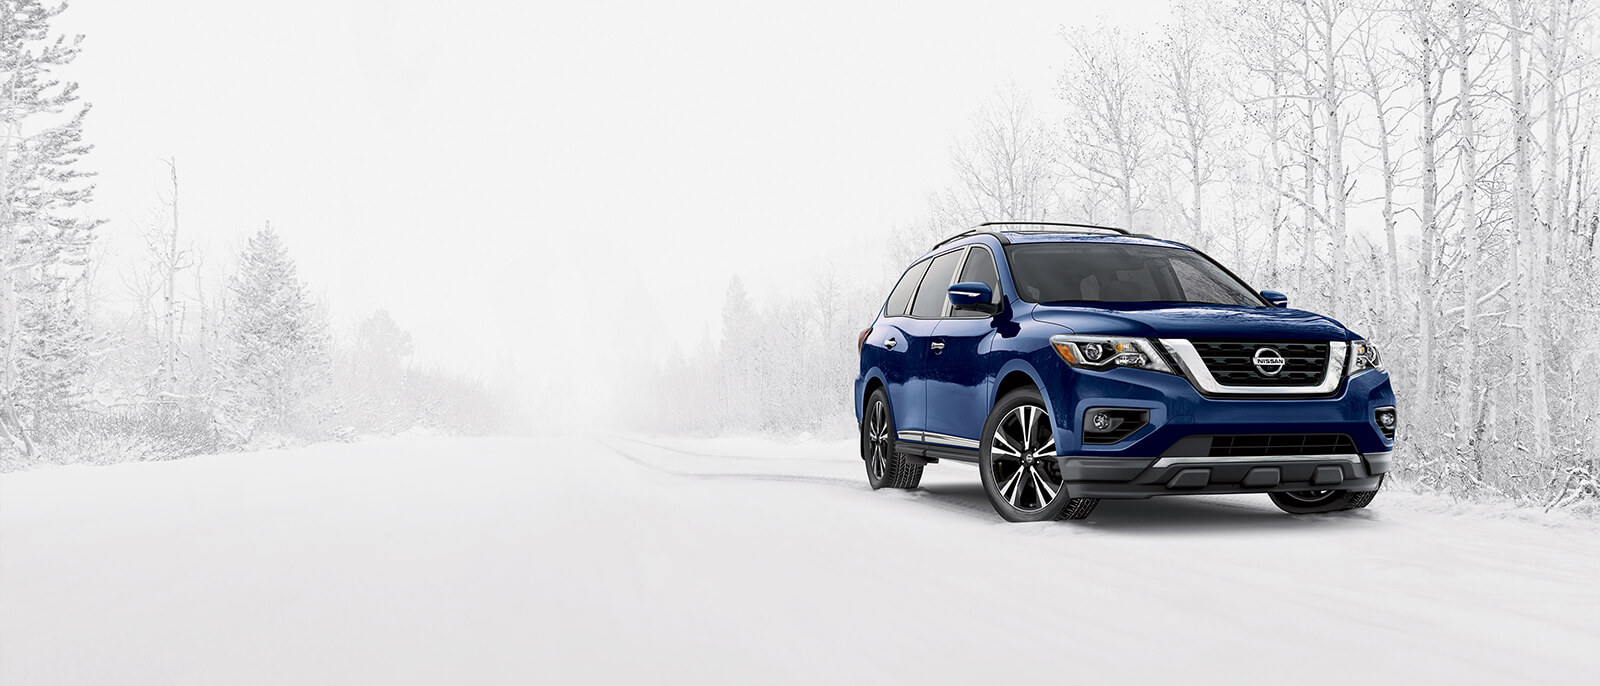 2017 Nisan Pathfinder Snow